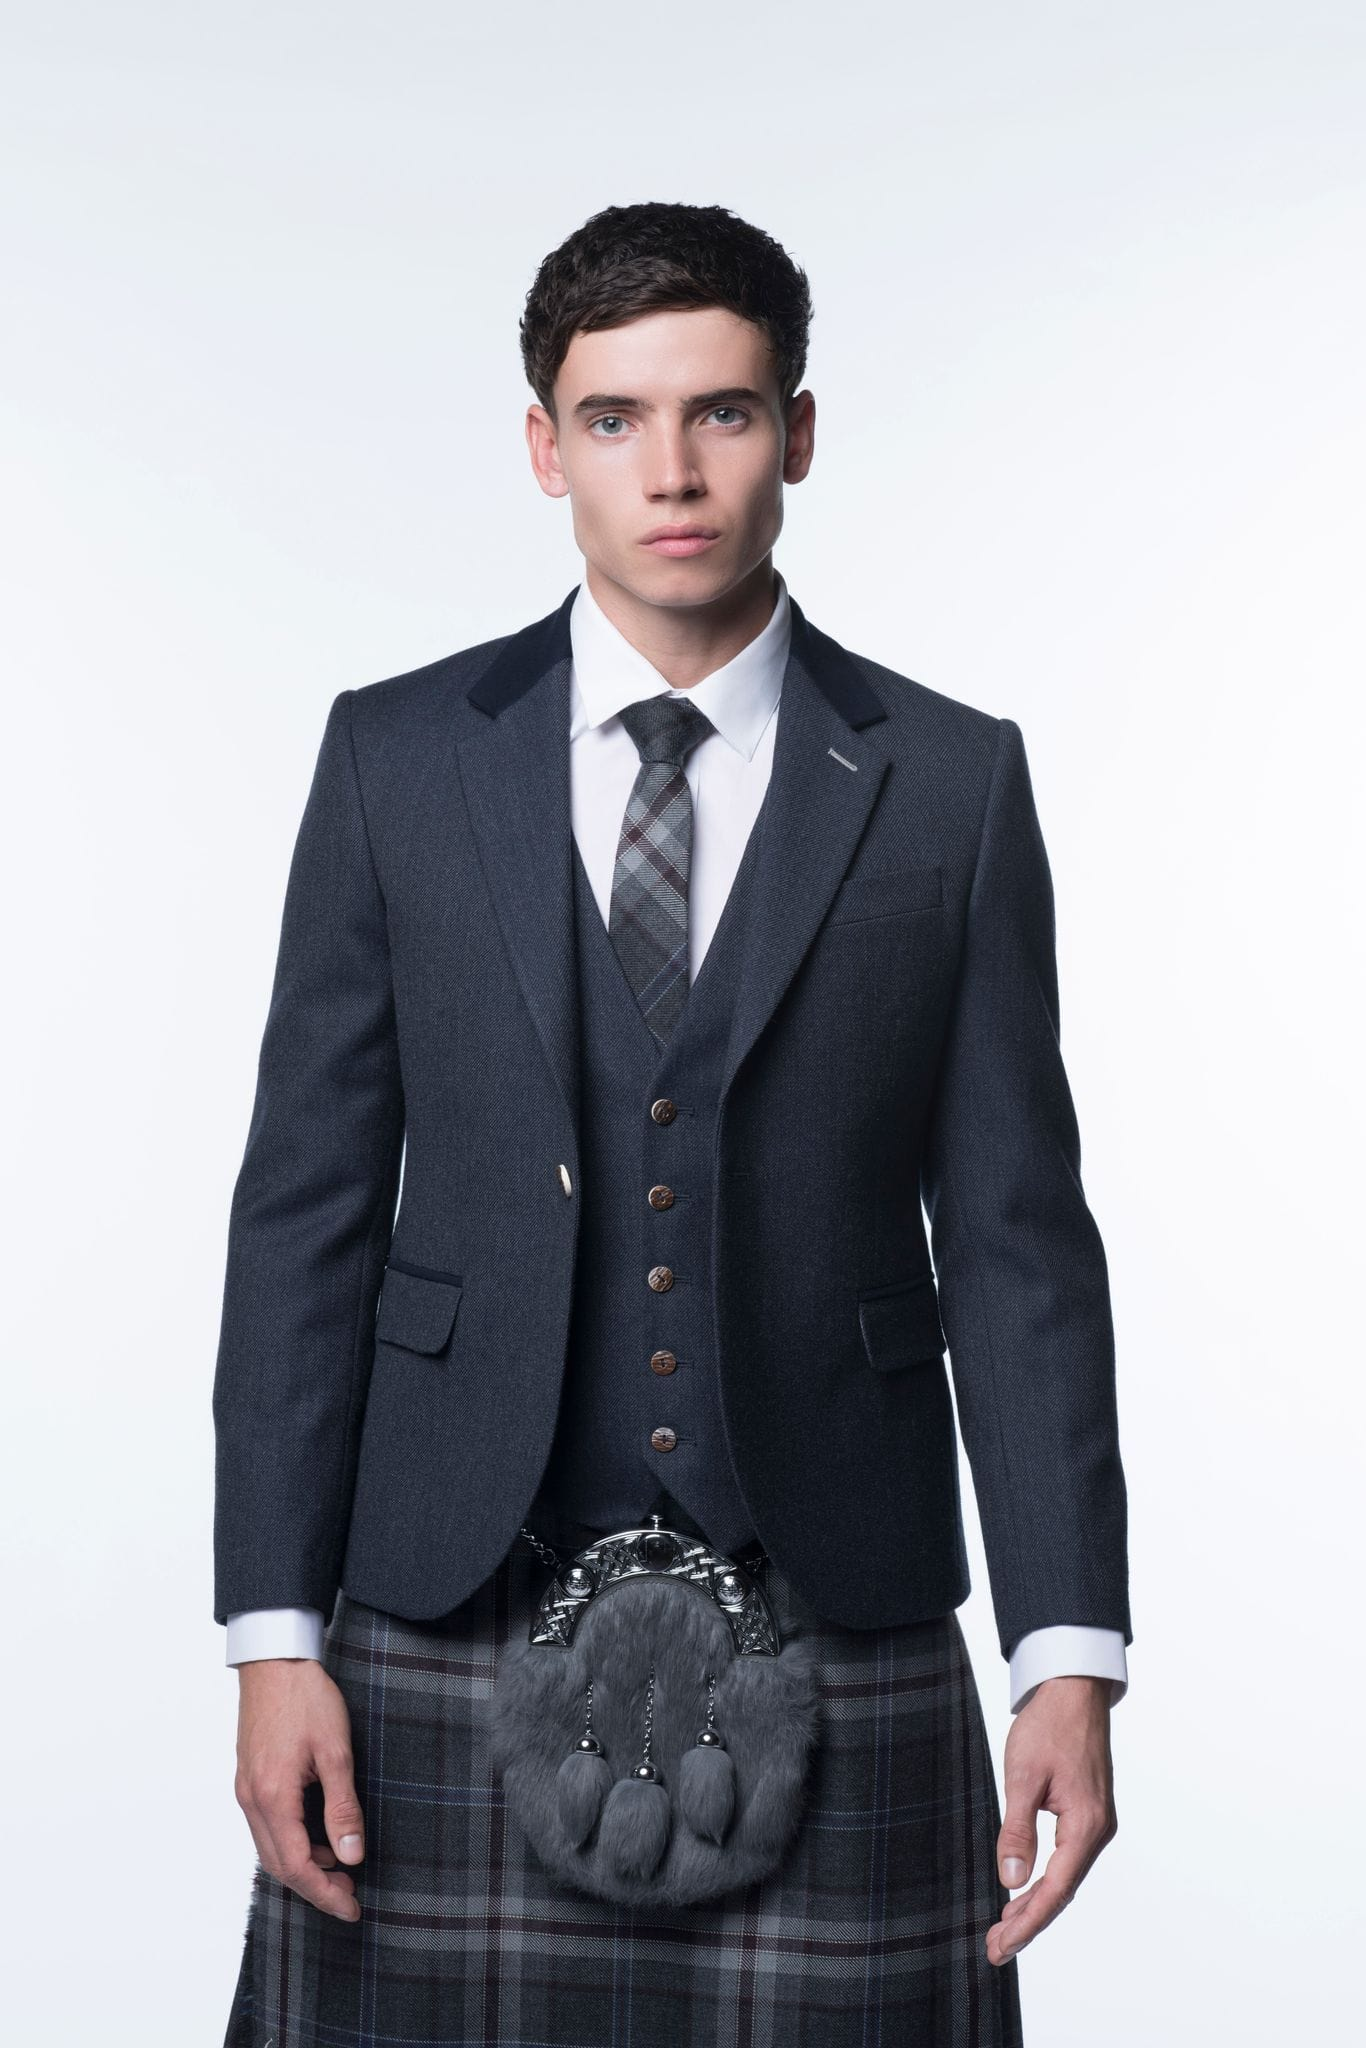 macgregorandmacduff Jacket Signature Collection Jacket & Waistcoat